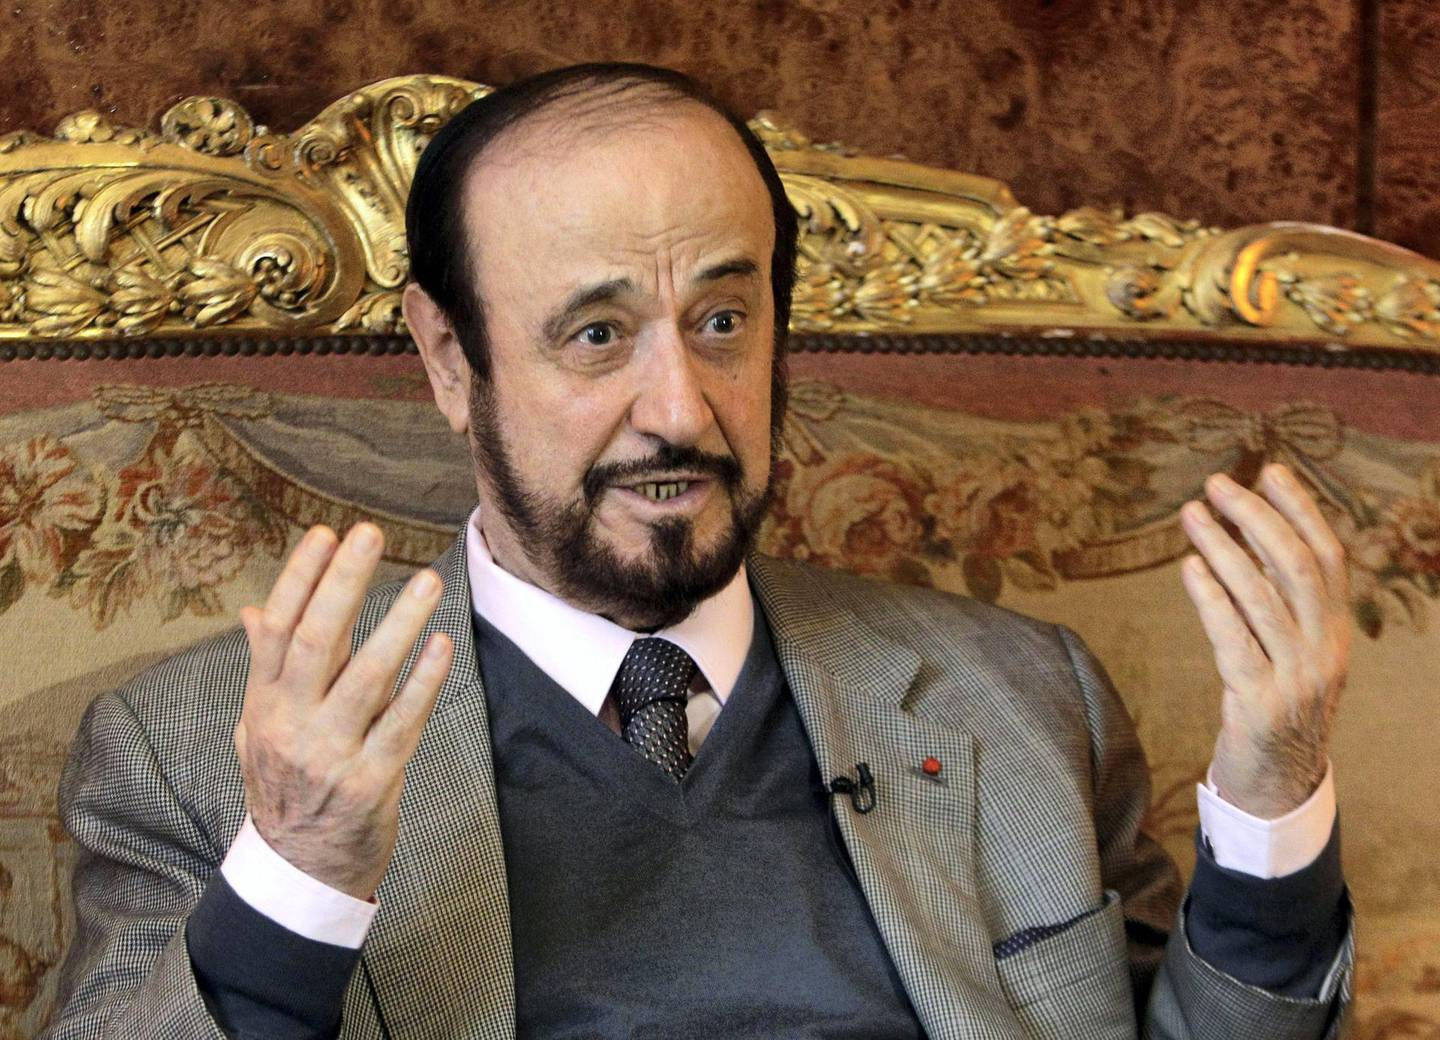 Rifaat Assad, an exiled uncle of Syrian president Bashar Assad, answers the Associated Press, Tuesday Nov. 15, 2011 in Paris.(AP Photo/Michel Euler)